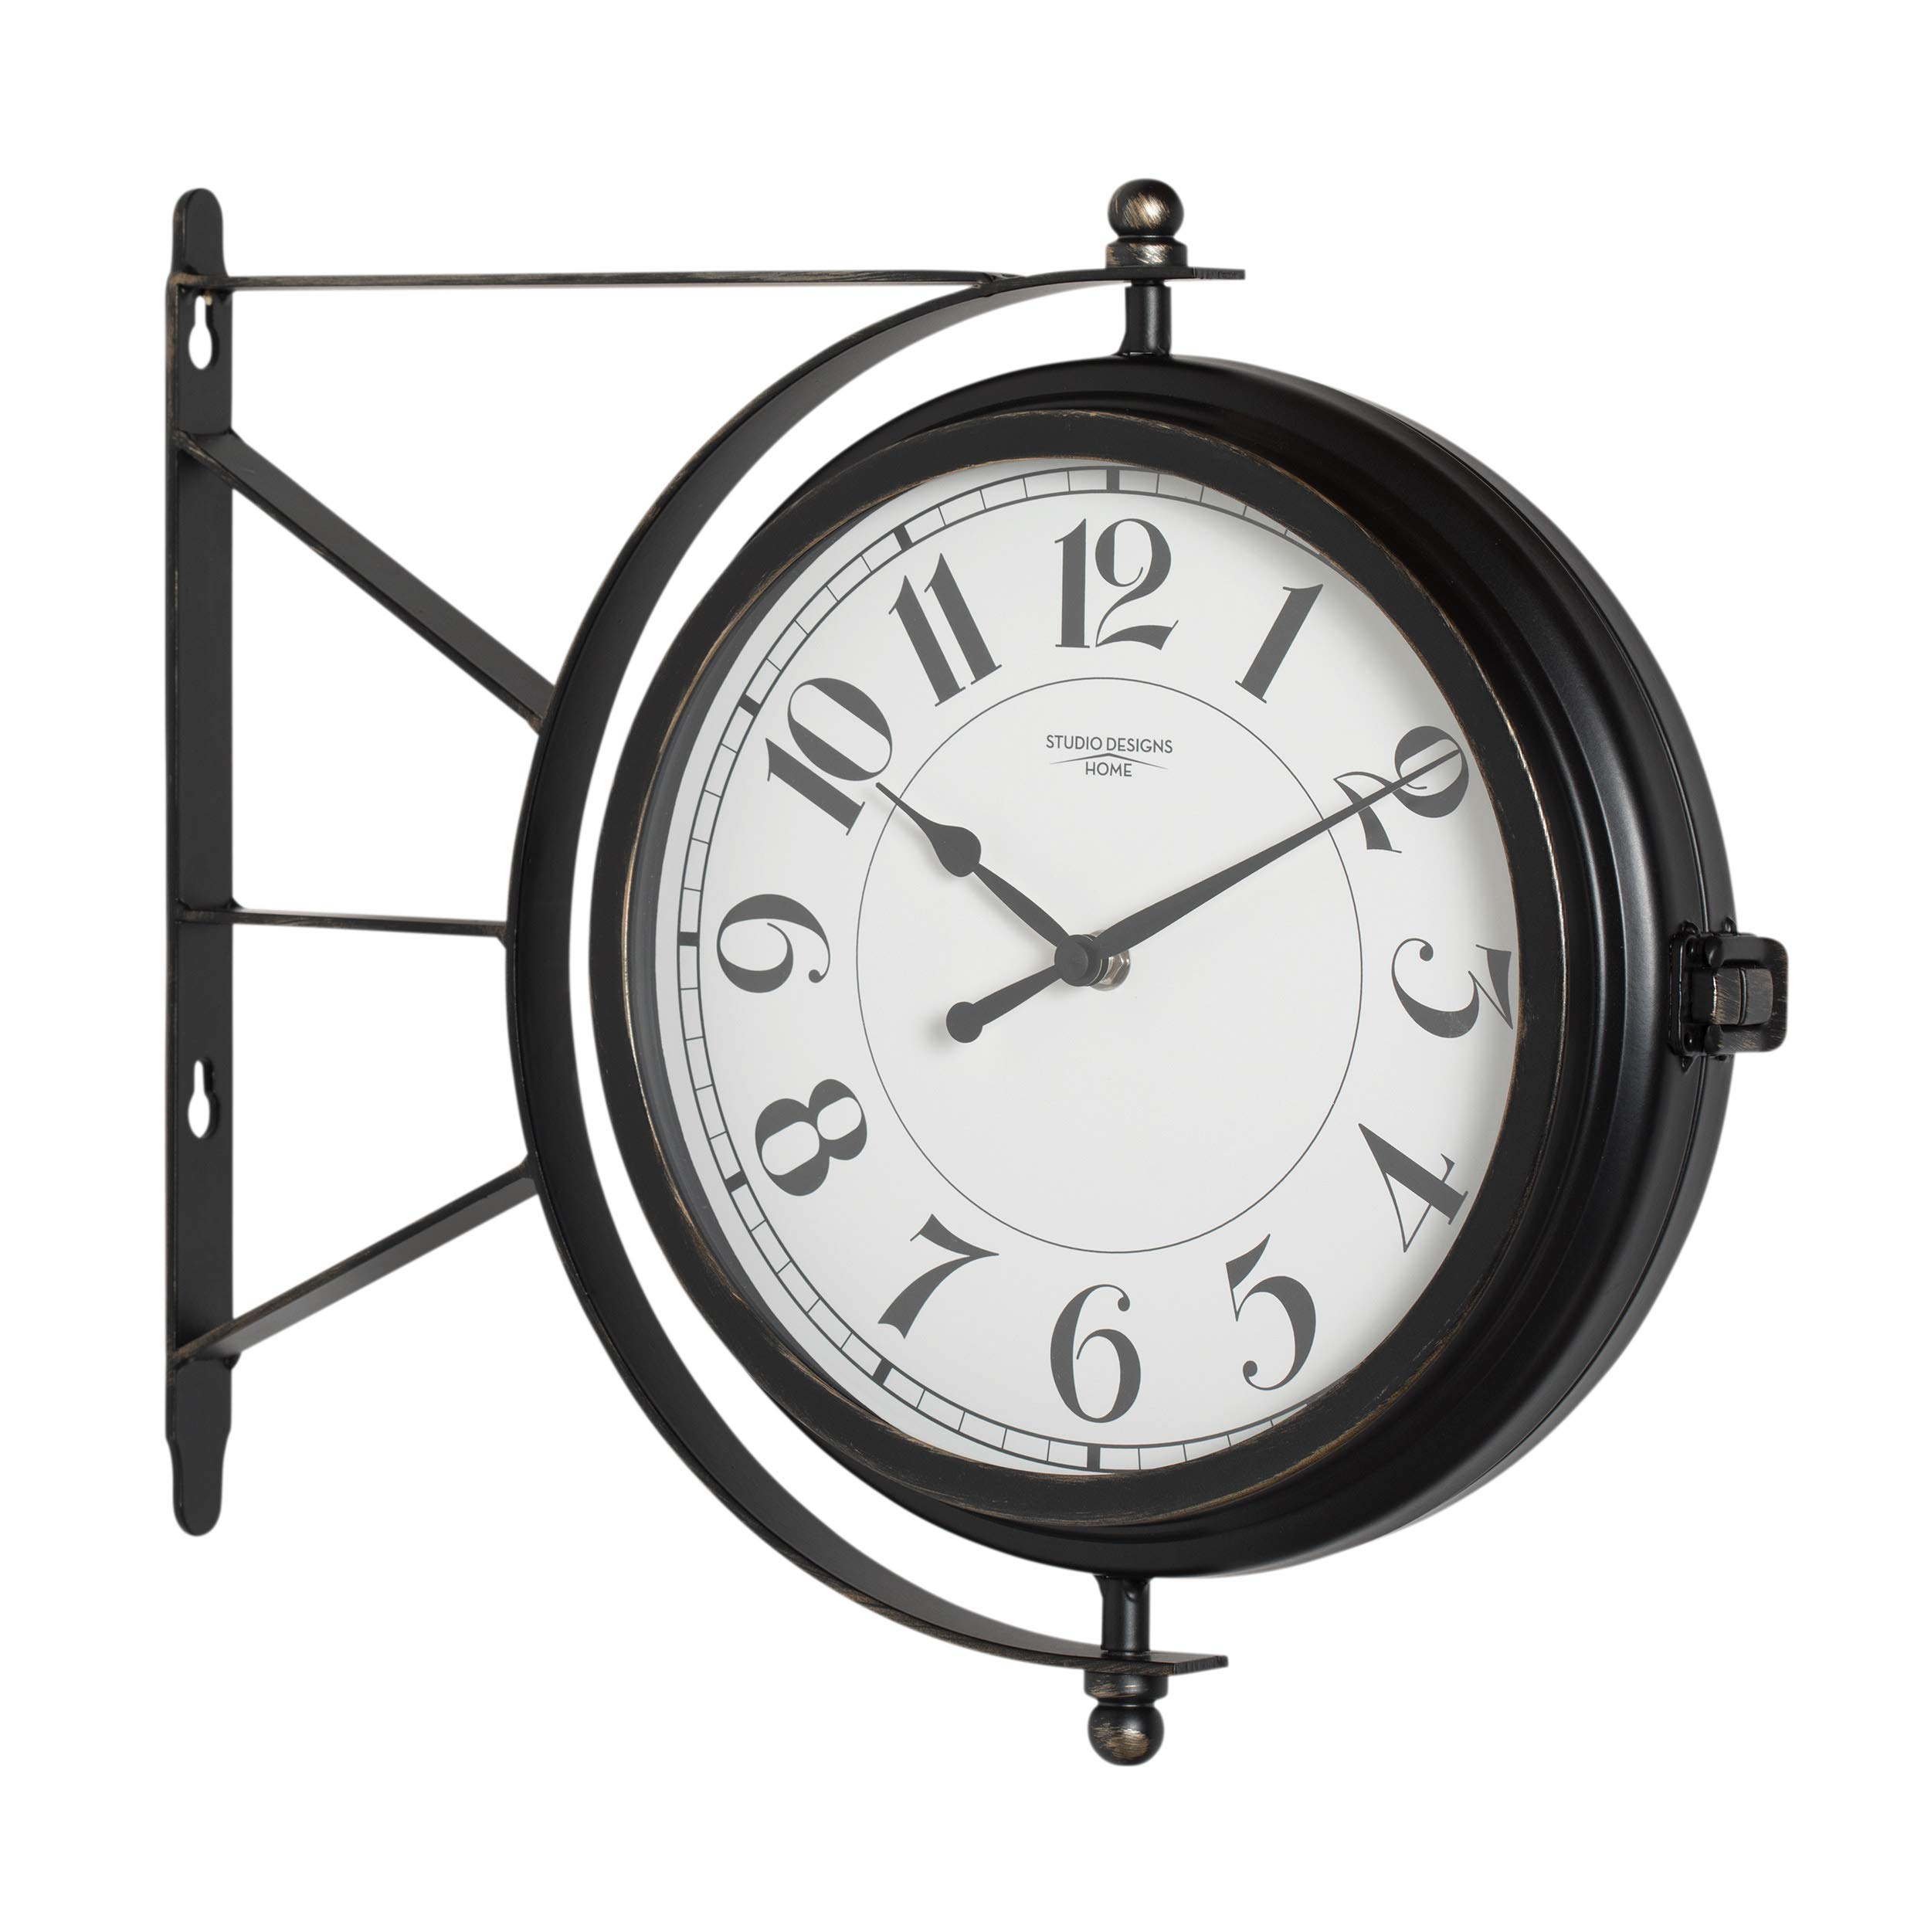 Studio Designs Home Metro Station 18'' Dual Face Clock and Thermometer in Oil Rubbed Bronze 73015, 15.75'' W x 14.25'' H x 3.25'' D